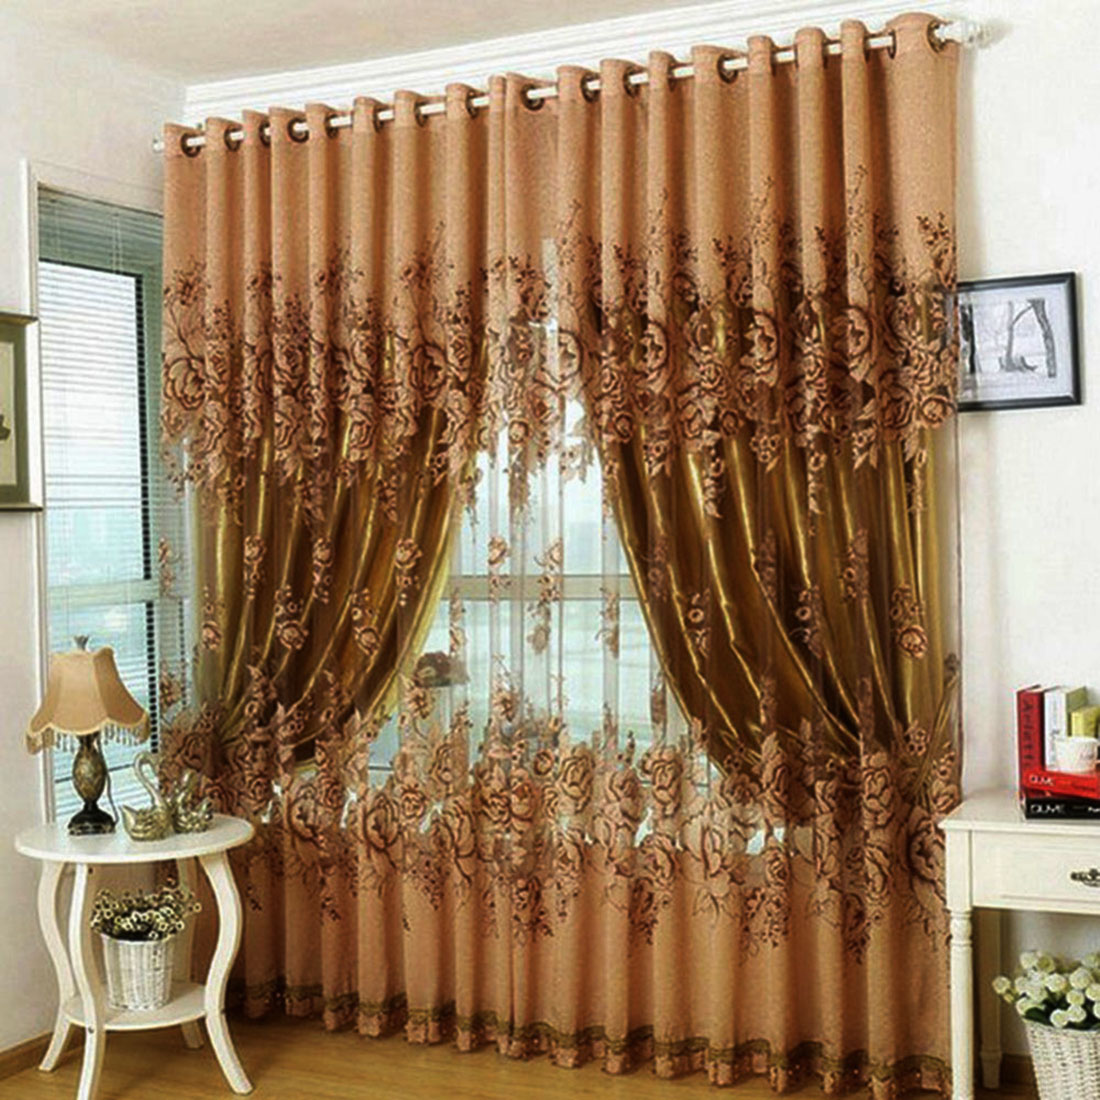 Mode Modern Floral Tulle Living Room Gardin (Brown) 250 * 100cm